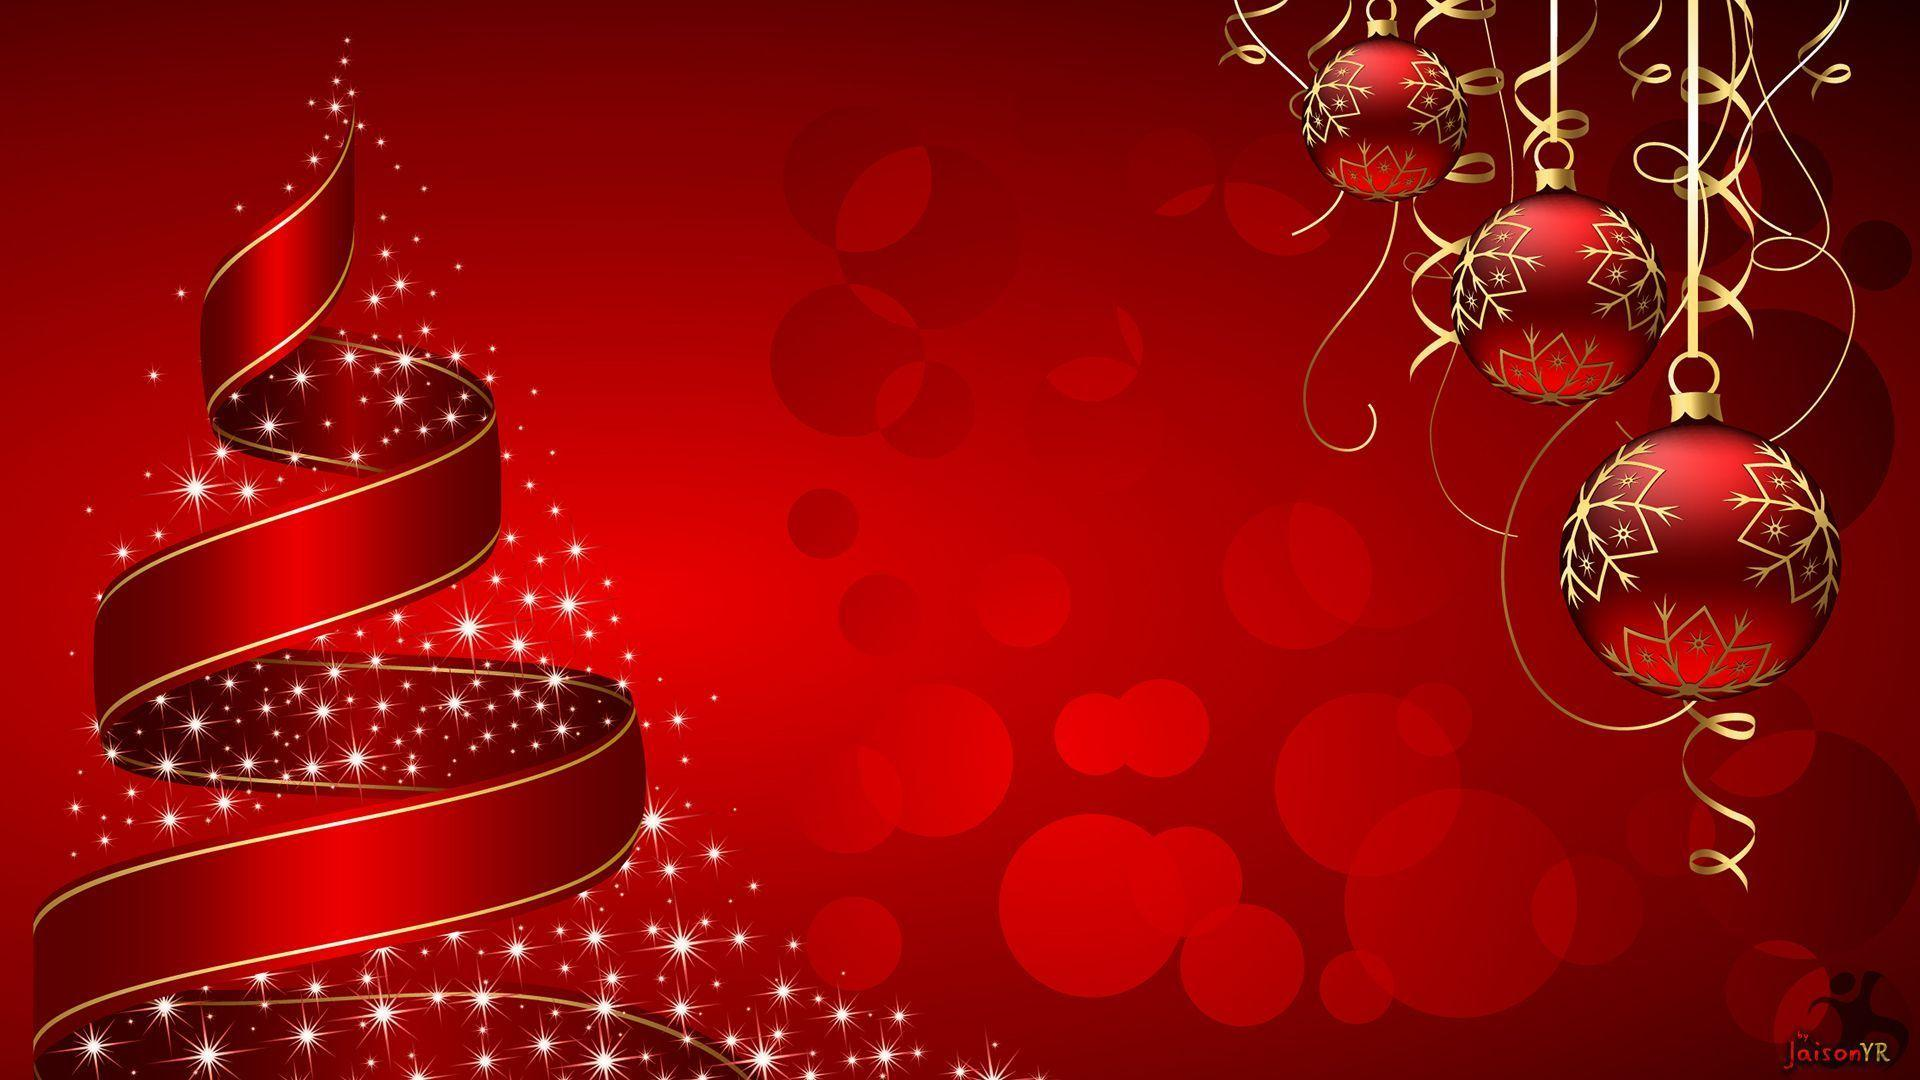 Christmas Backgrounds 9 cool hq 408095 High Definition Wallpapers ...